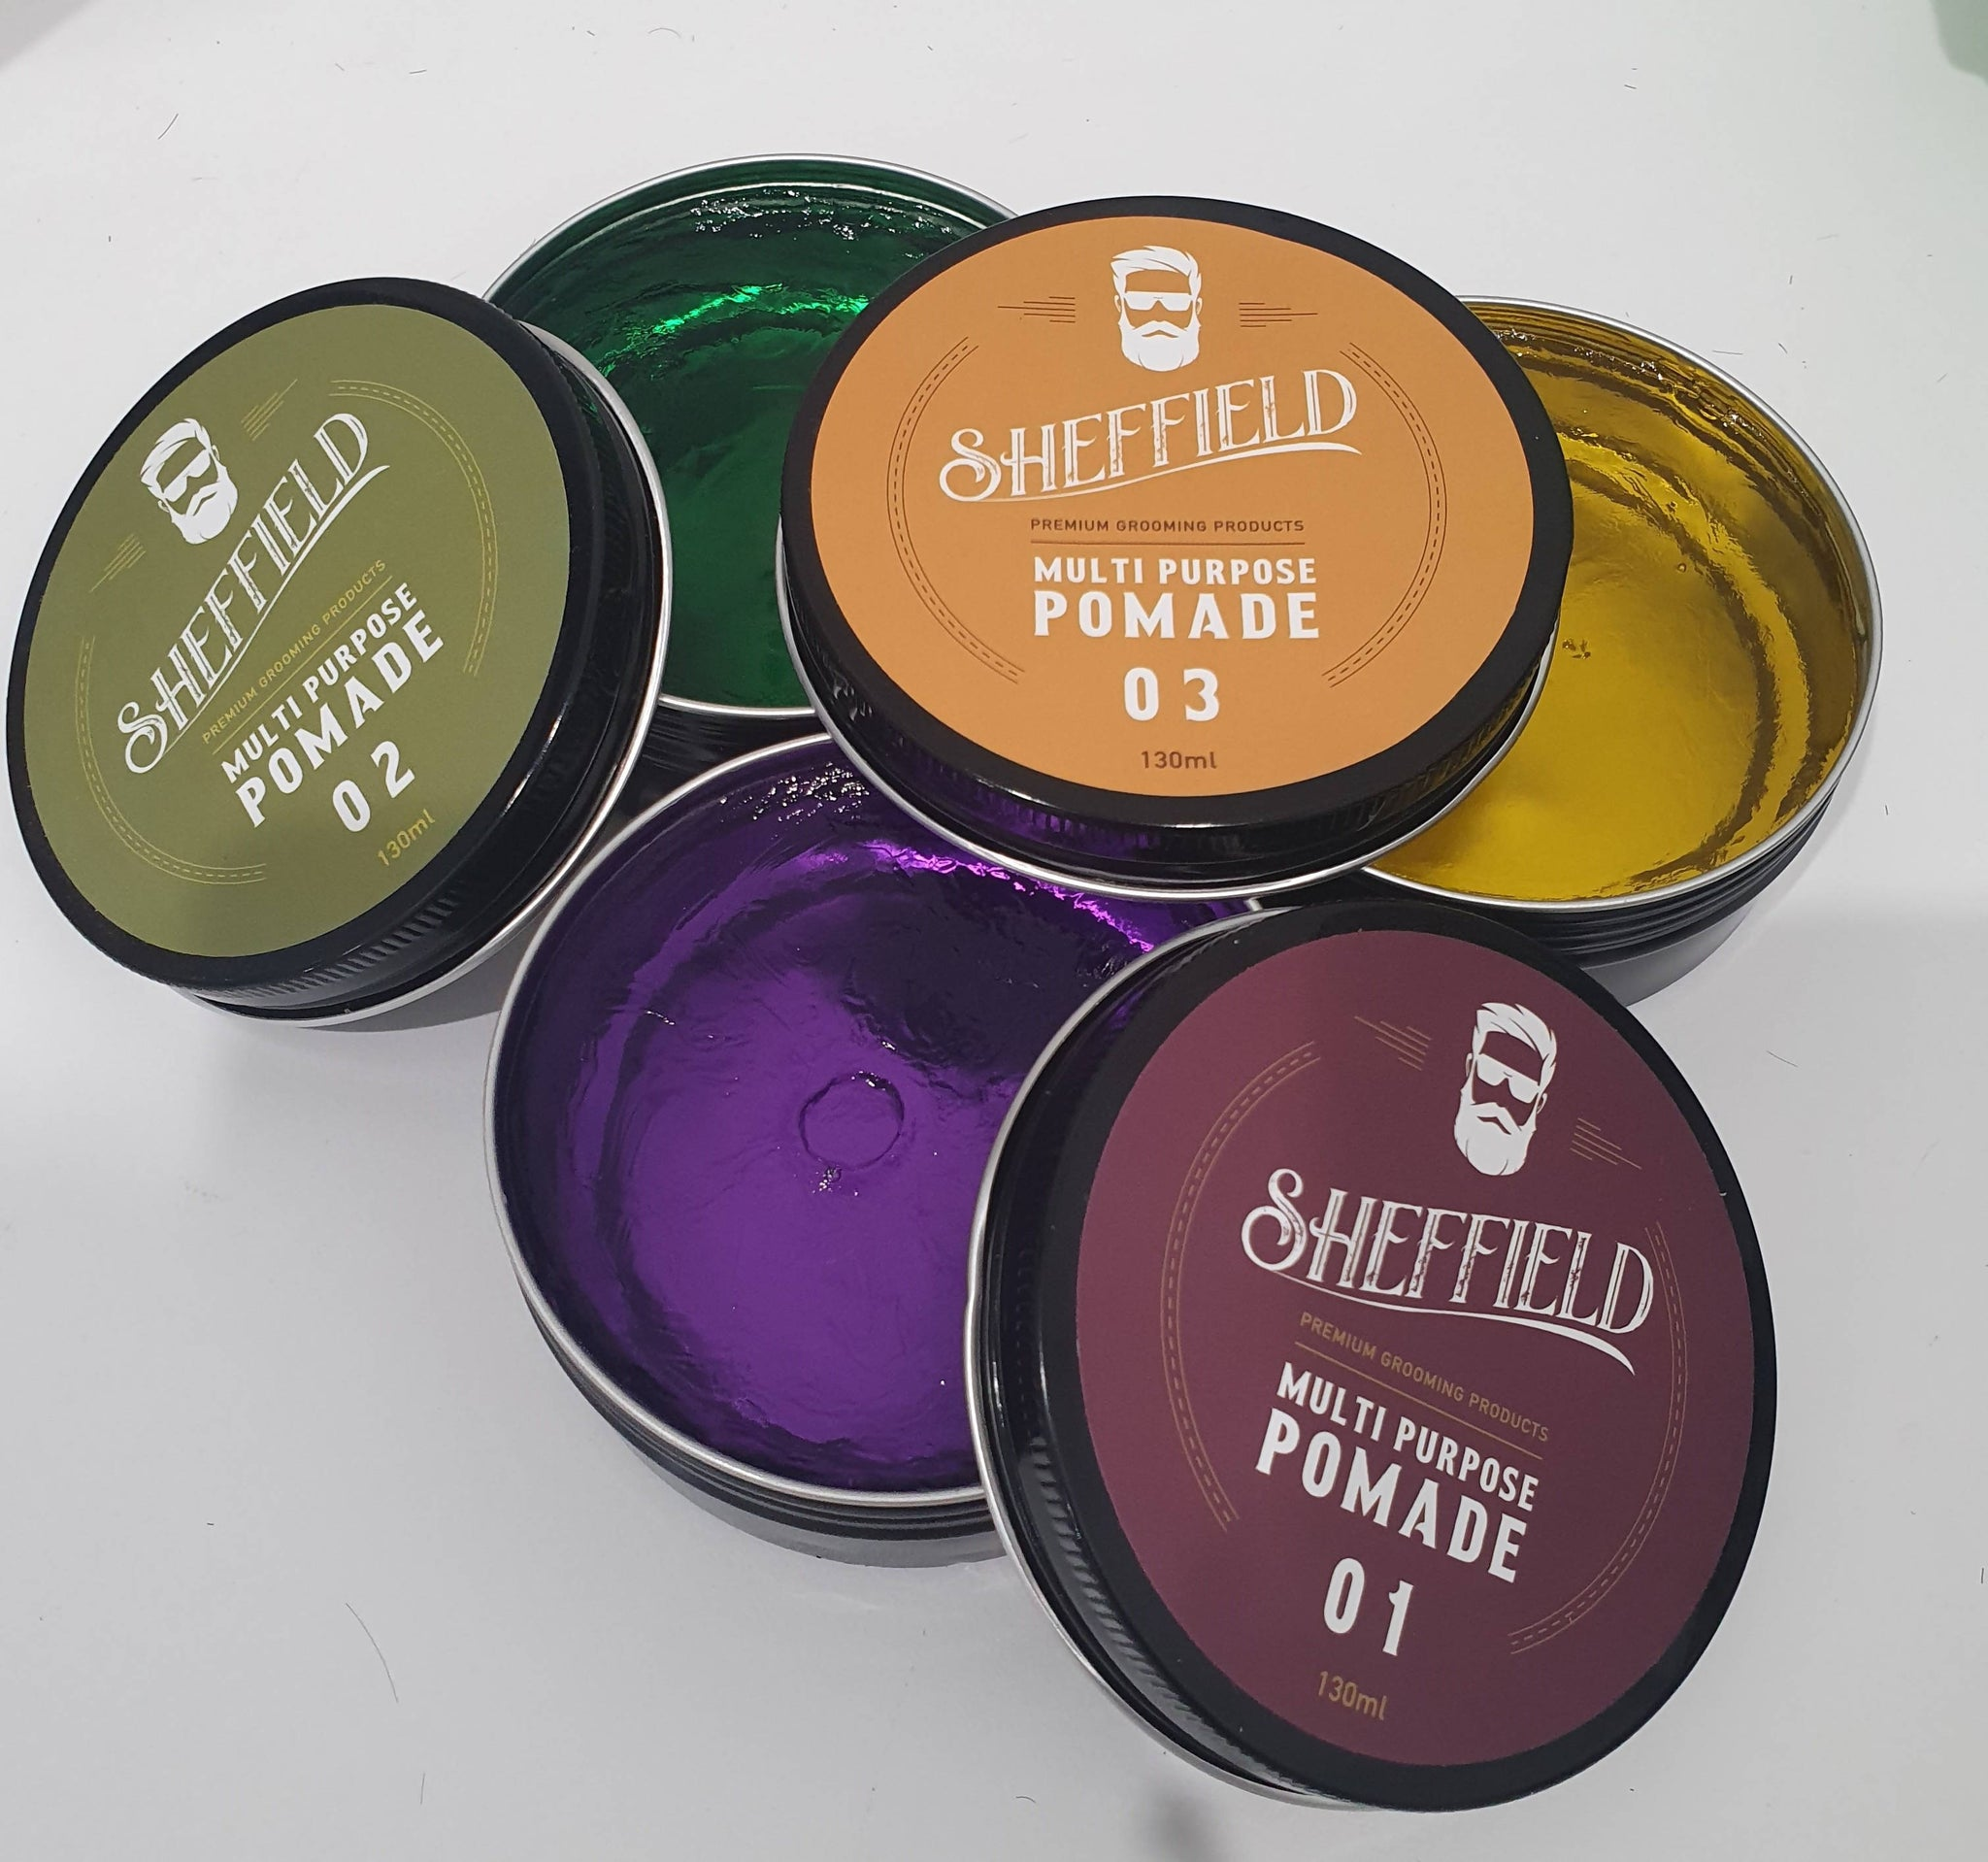 Sheffield Premium Grooming Product - Pomade